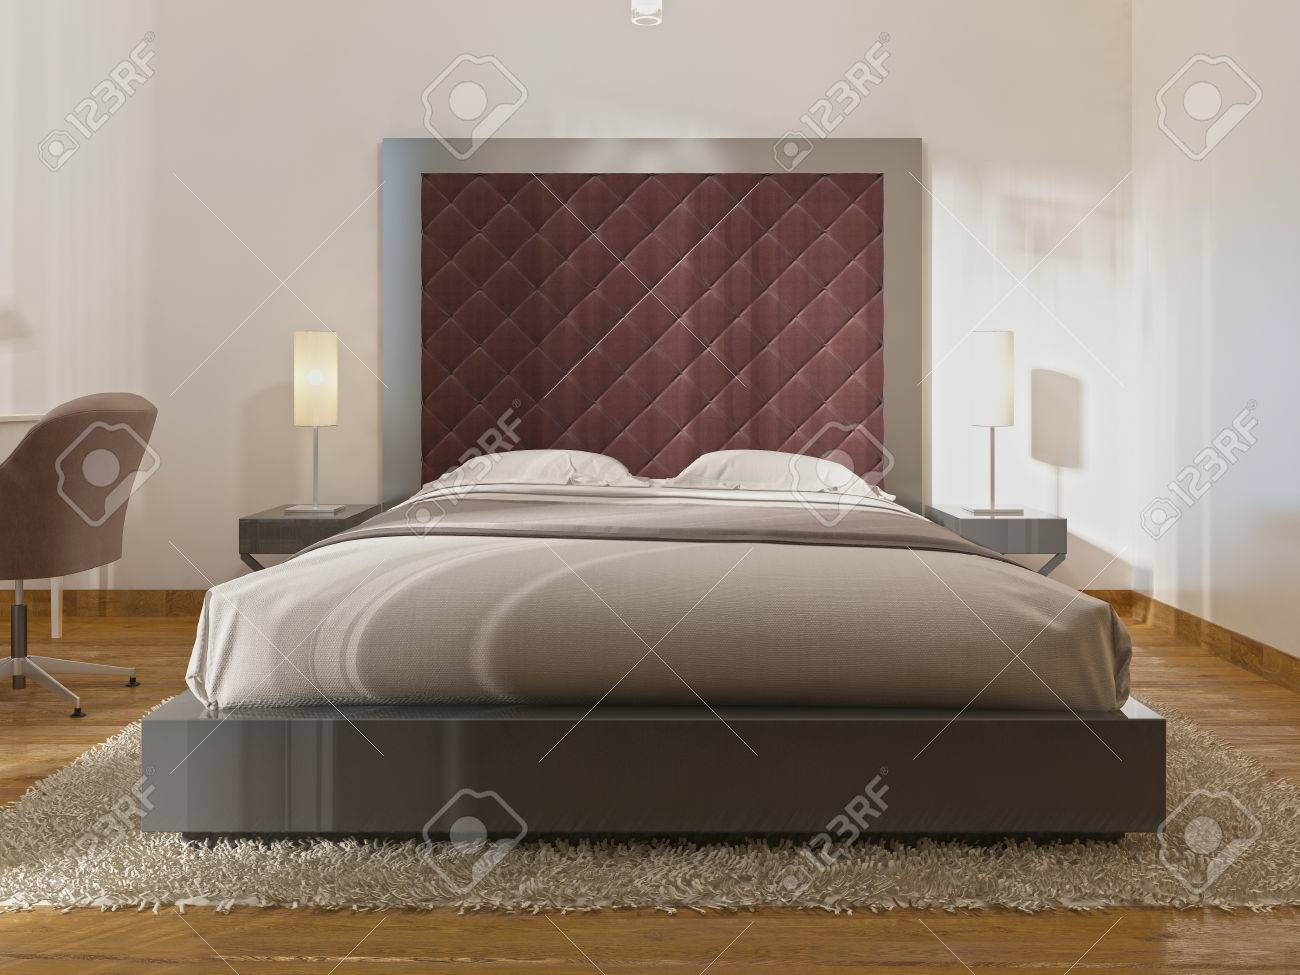 Luxurious One Double Bed In The Hotel Room In Art Deco. A Large Padded  Headboard